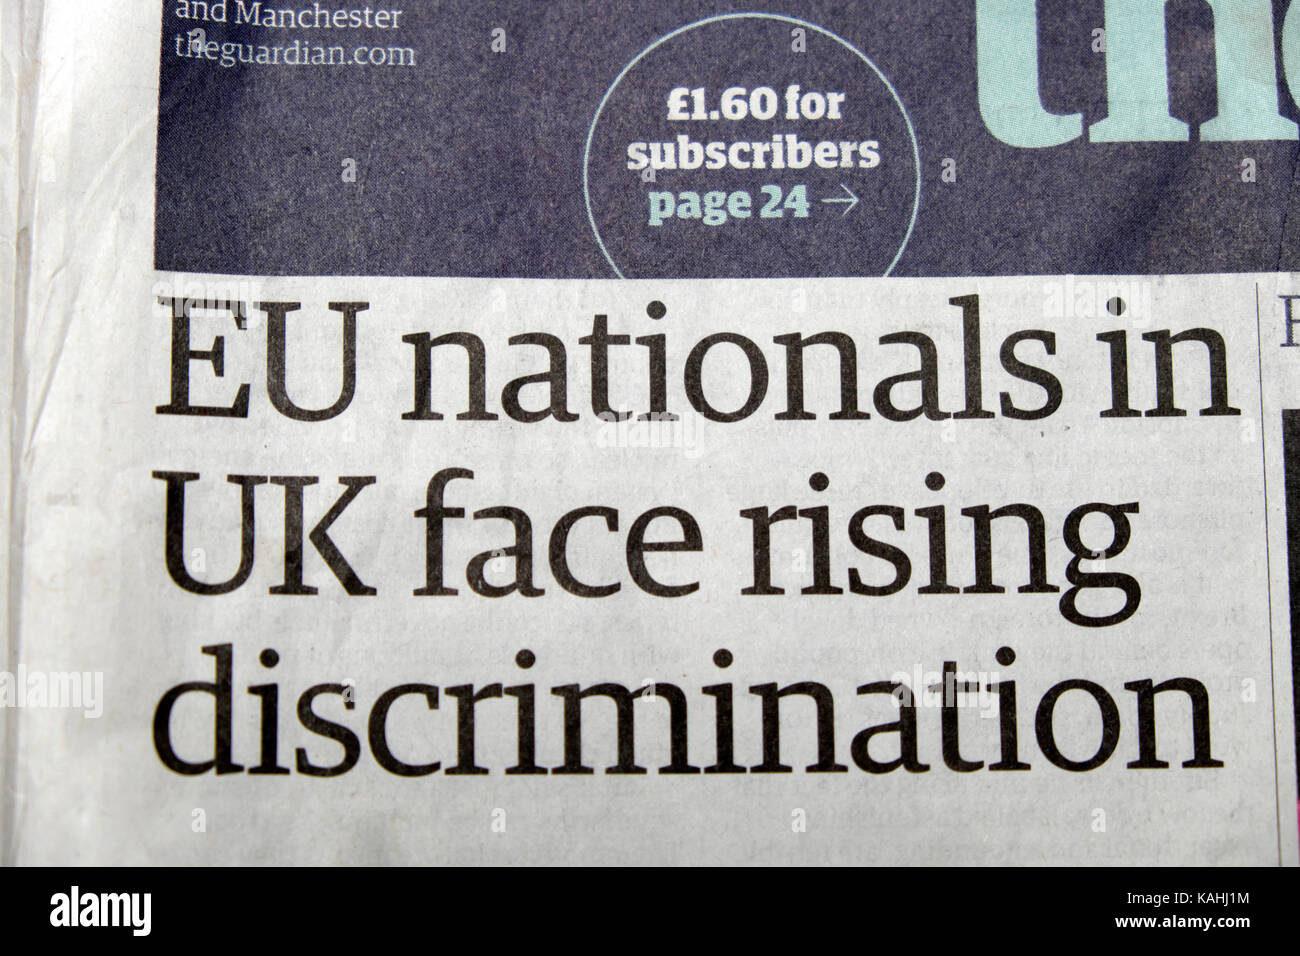 'EU nationals in UK face rising discrimination' Guardian newspaper headline 2017 - Stock Image